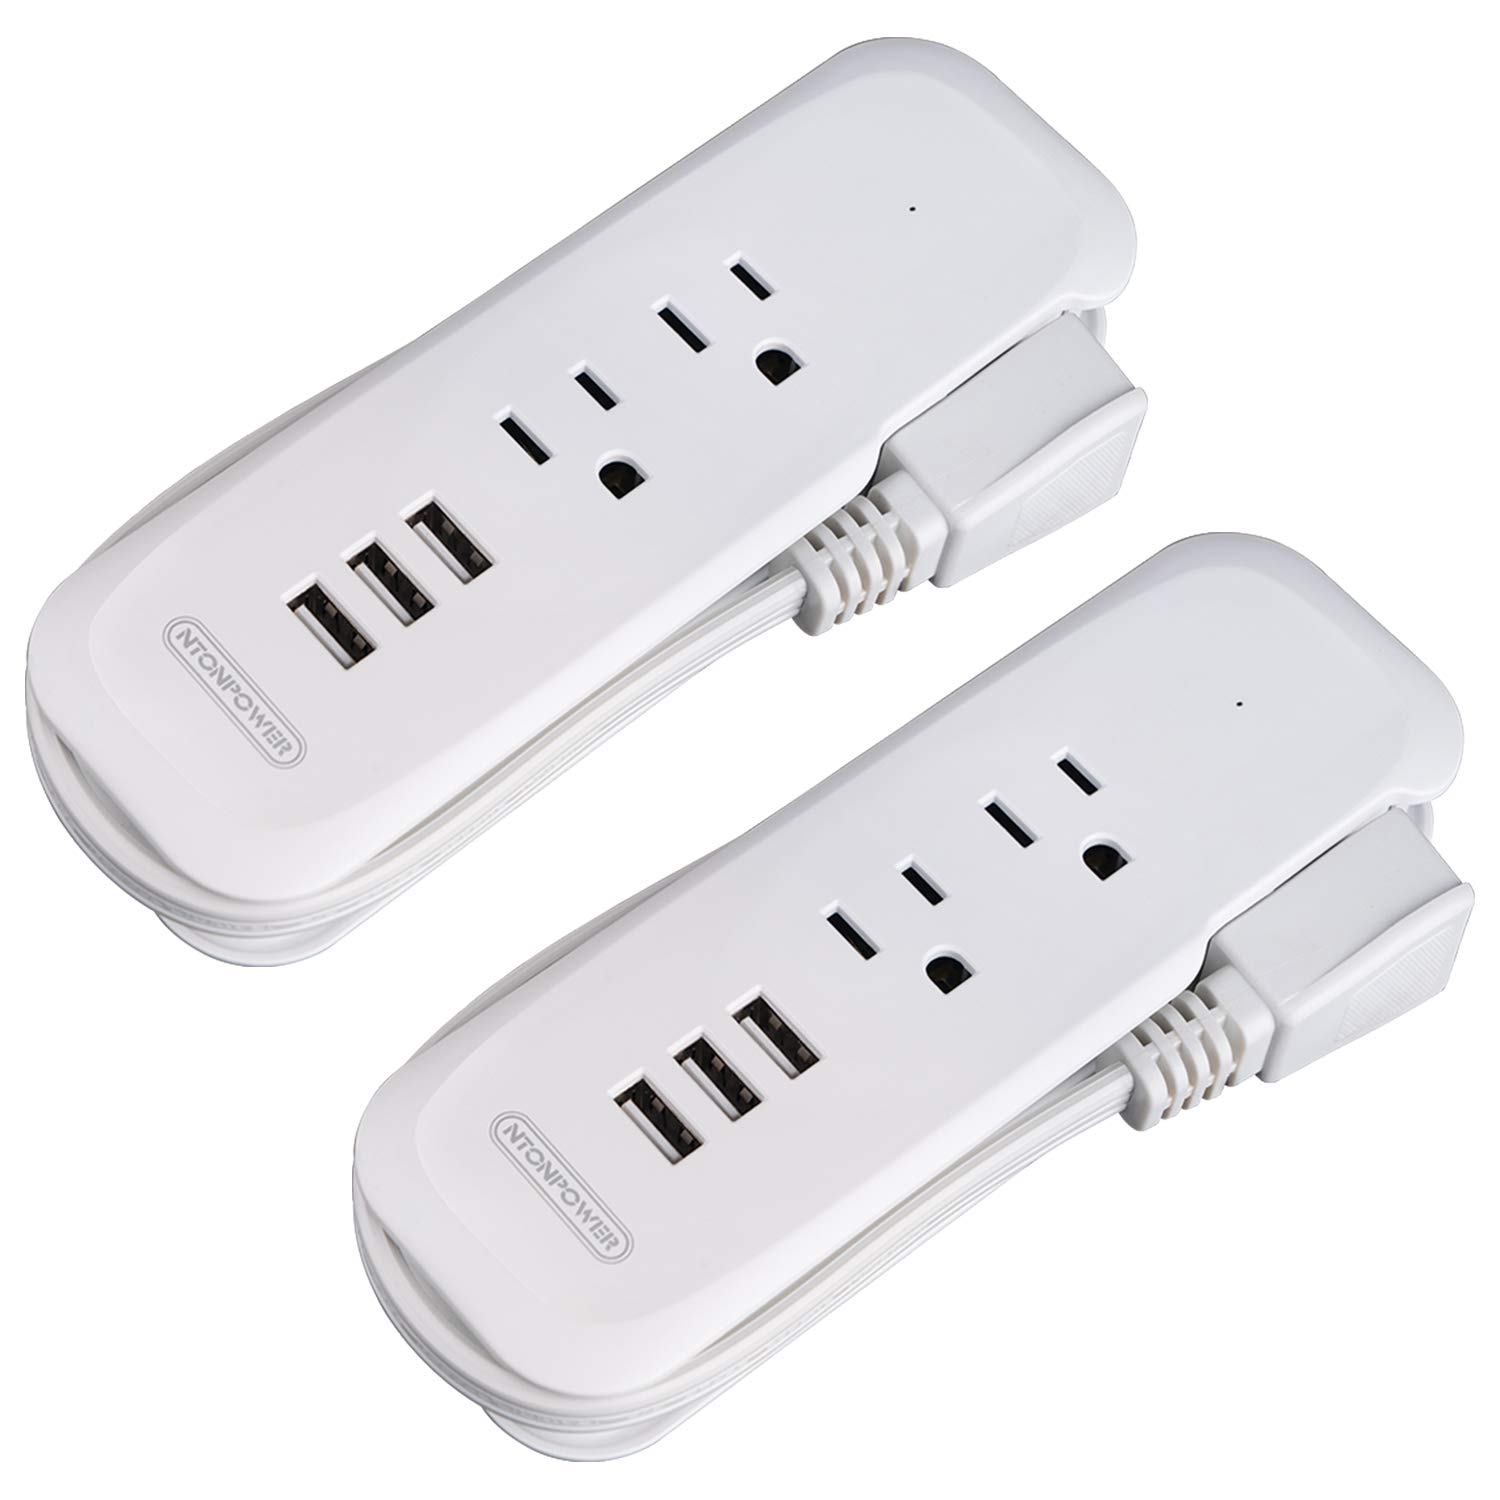 Travel Power Strip 2 Pack - NTONPOWER Power Strip with 2 Outlets and 3 USB, Portable Desktop Charging Station, 15 inches Short Extension Cord, Compact for Cruise Ship, Nightstand, Office, Home, Hotel